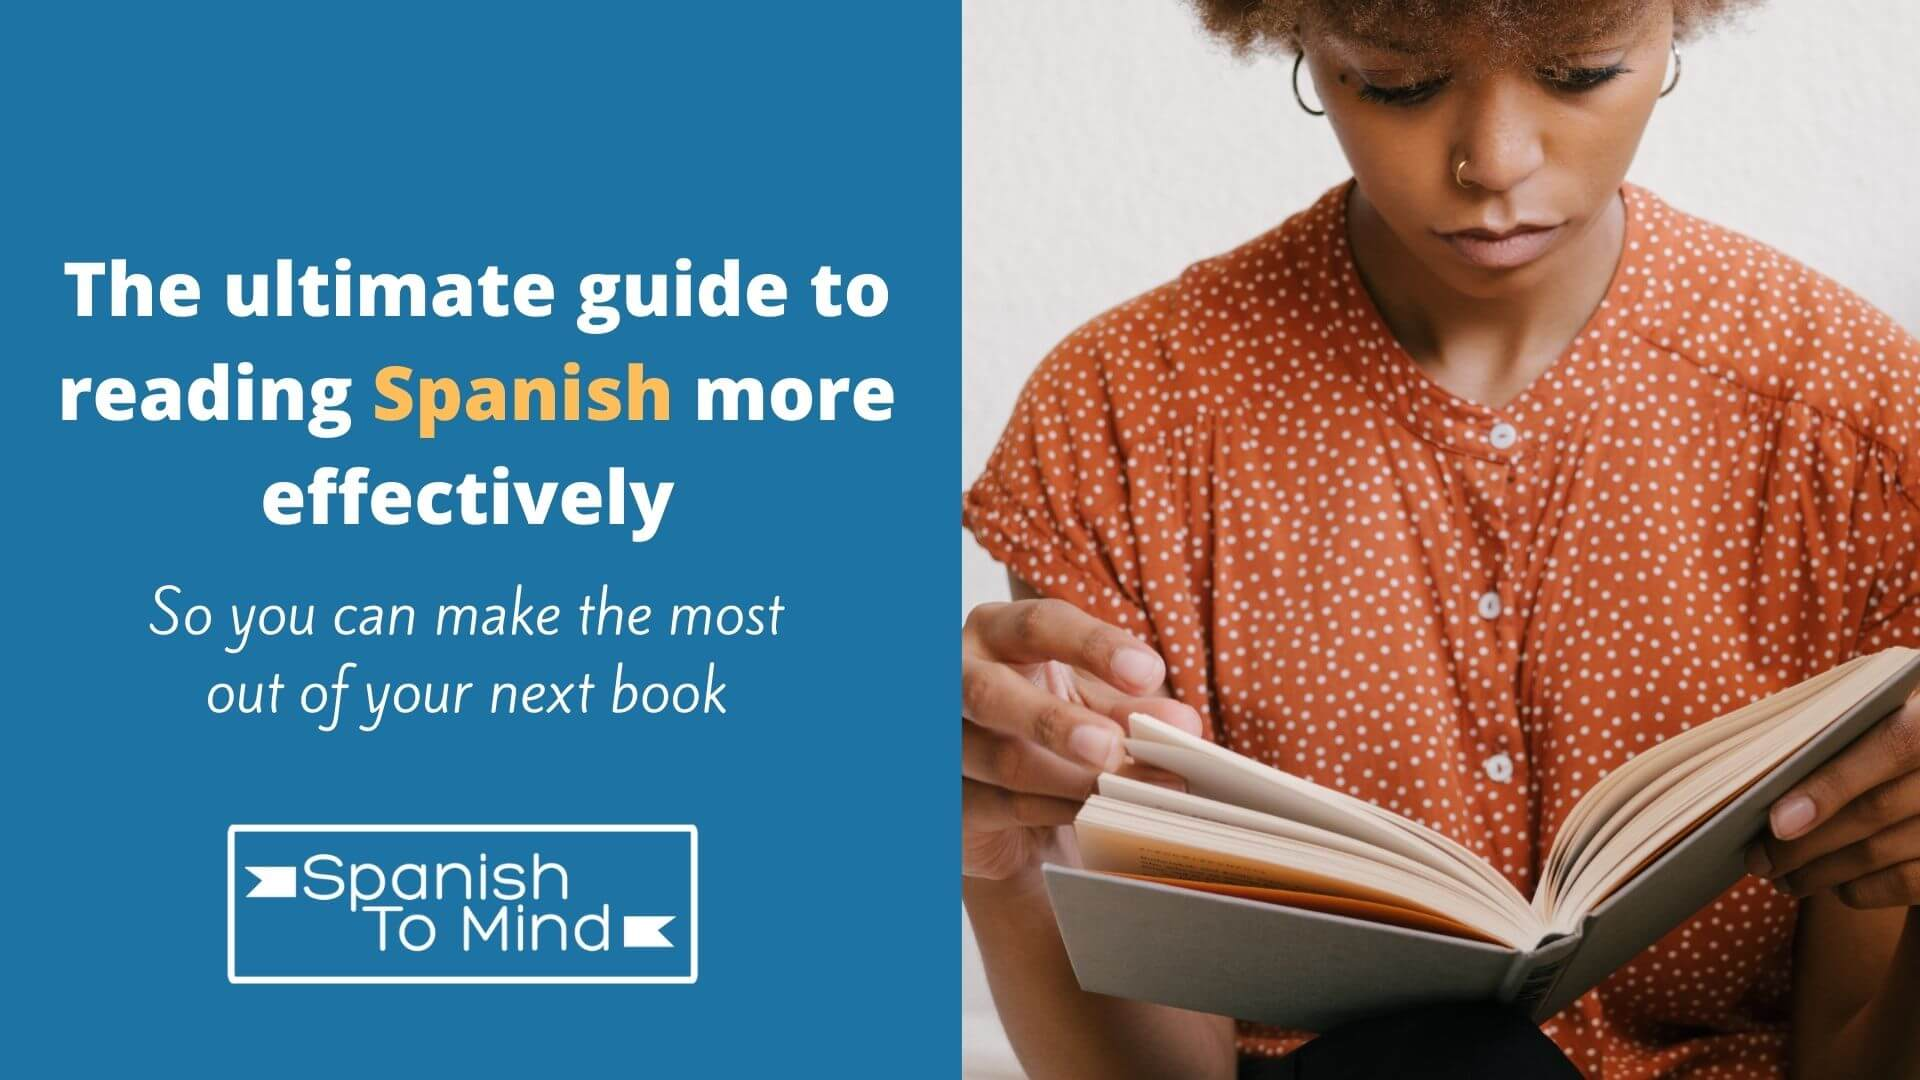 The ultimate guide to reading Spanish effectvely cover photo